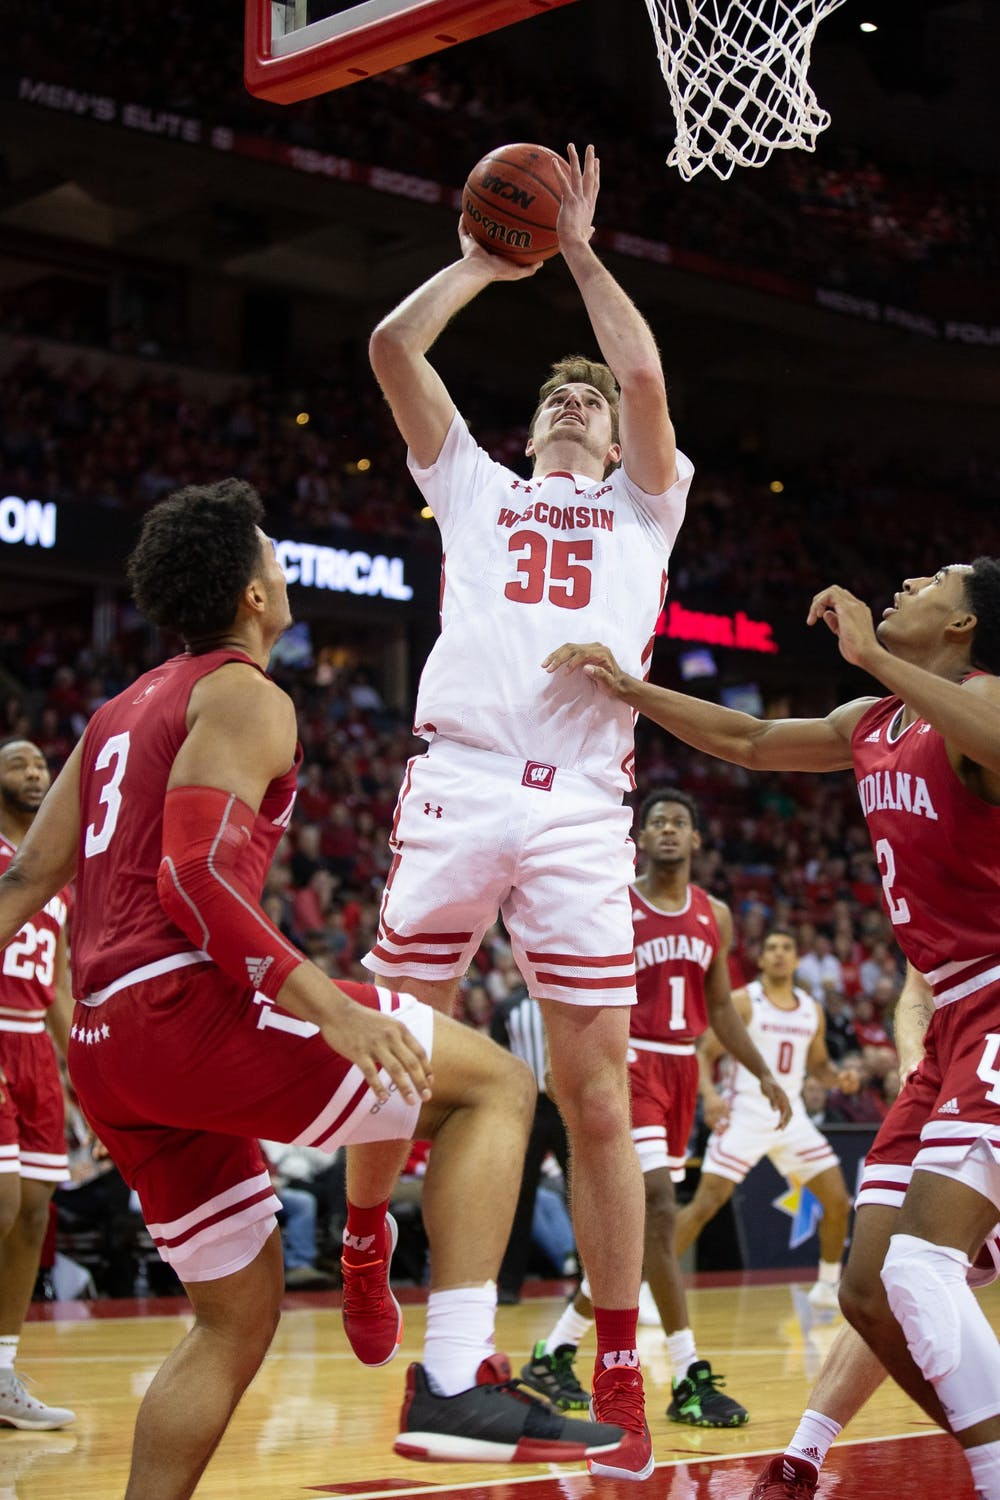 <p>Nate Reuvers' late offensive rebound and basket helped clinch UW's 60-56 win over Indiana.&nbsp;</p>